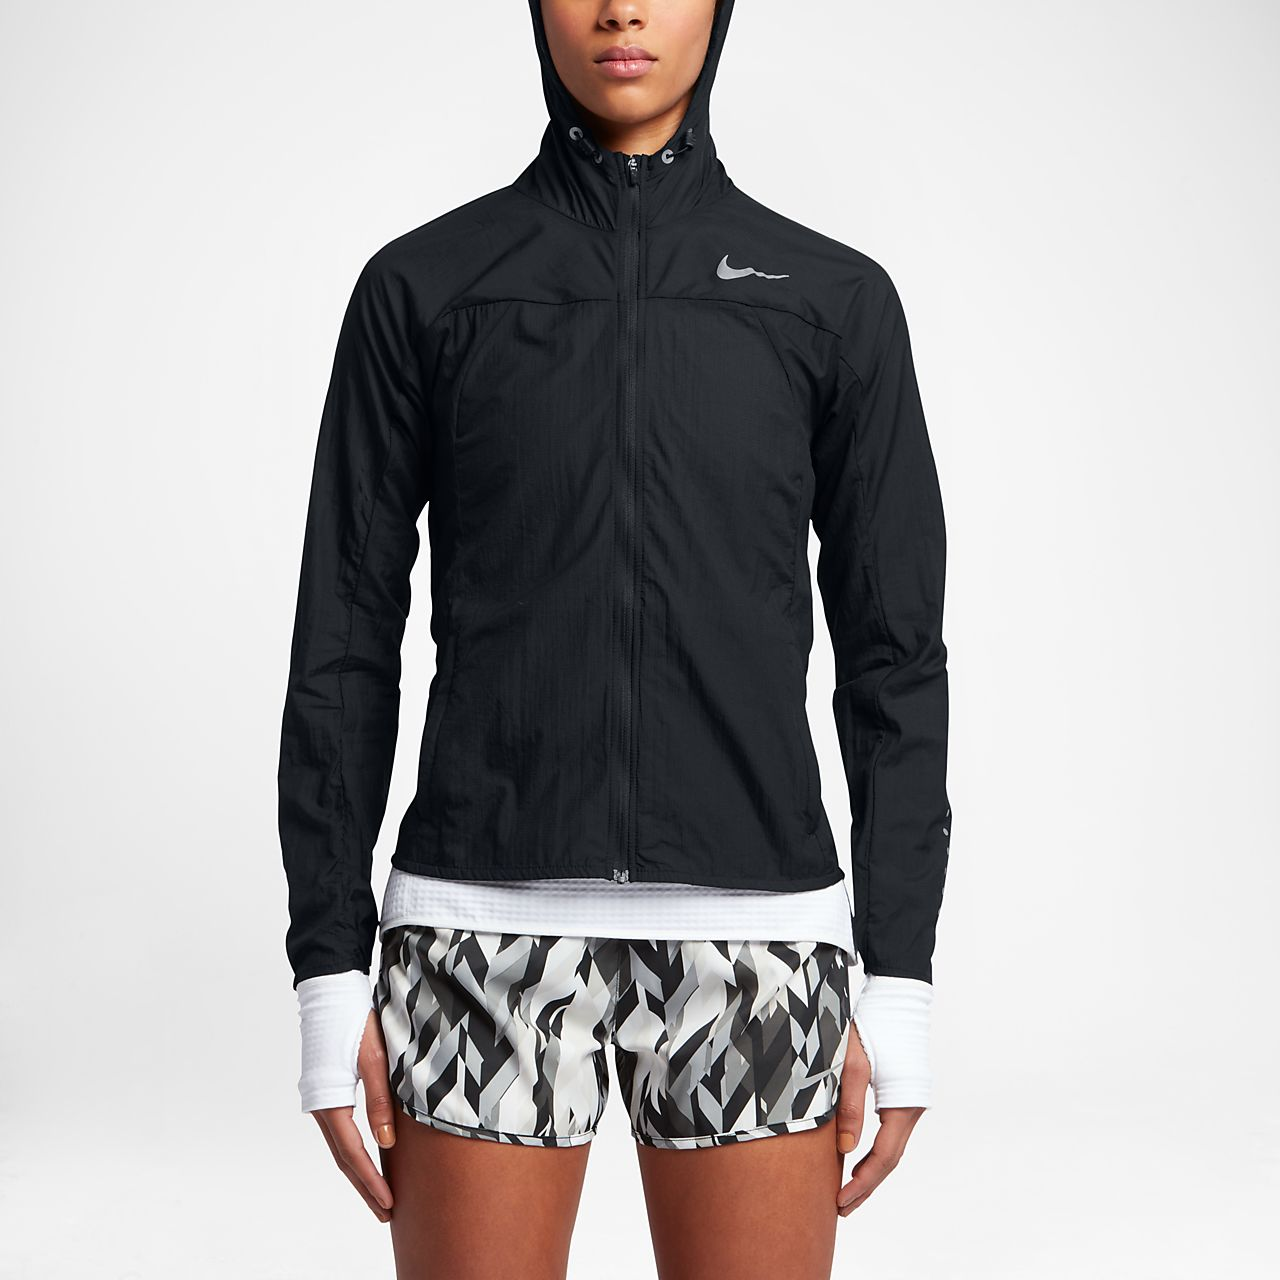 ... Nike Impossibly Light Women's Running Jacket